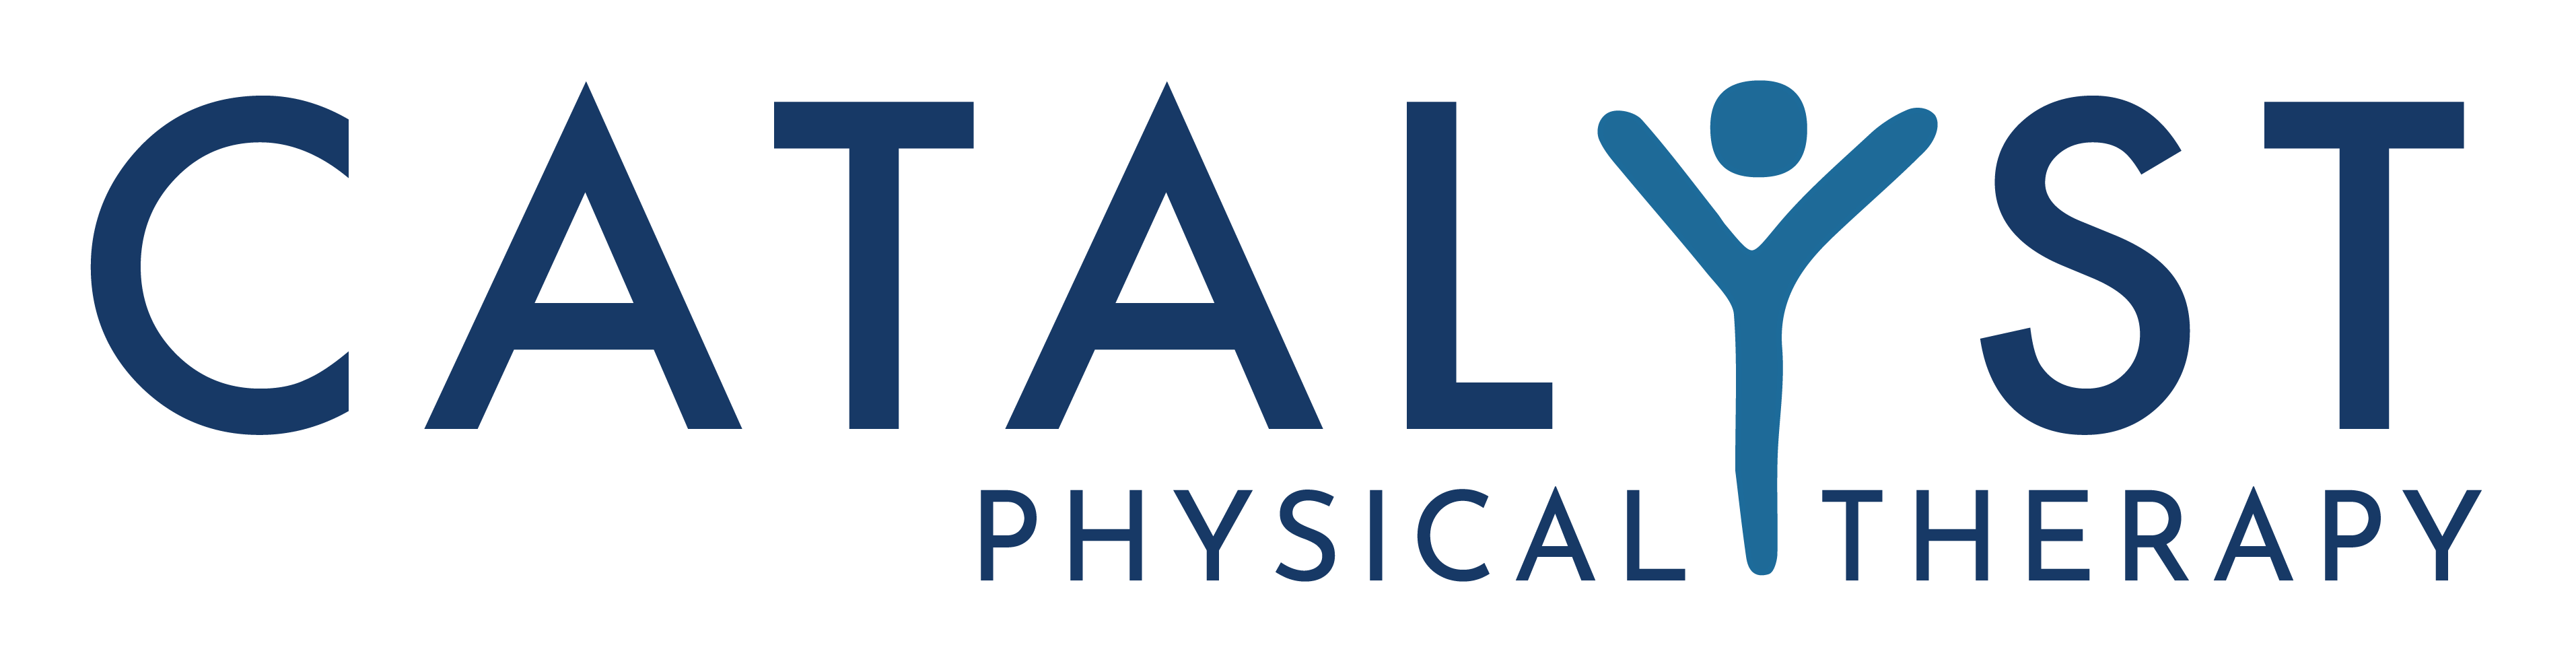 Catalyst Physical Therapy